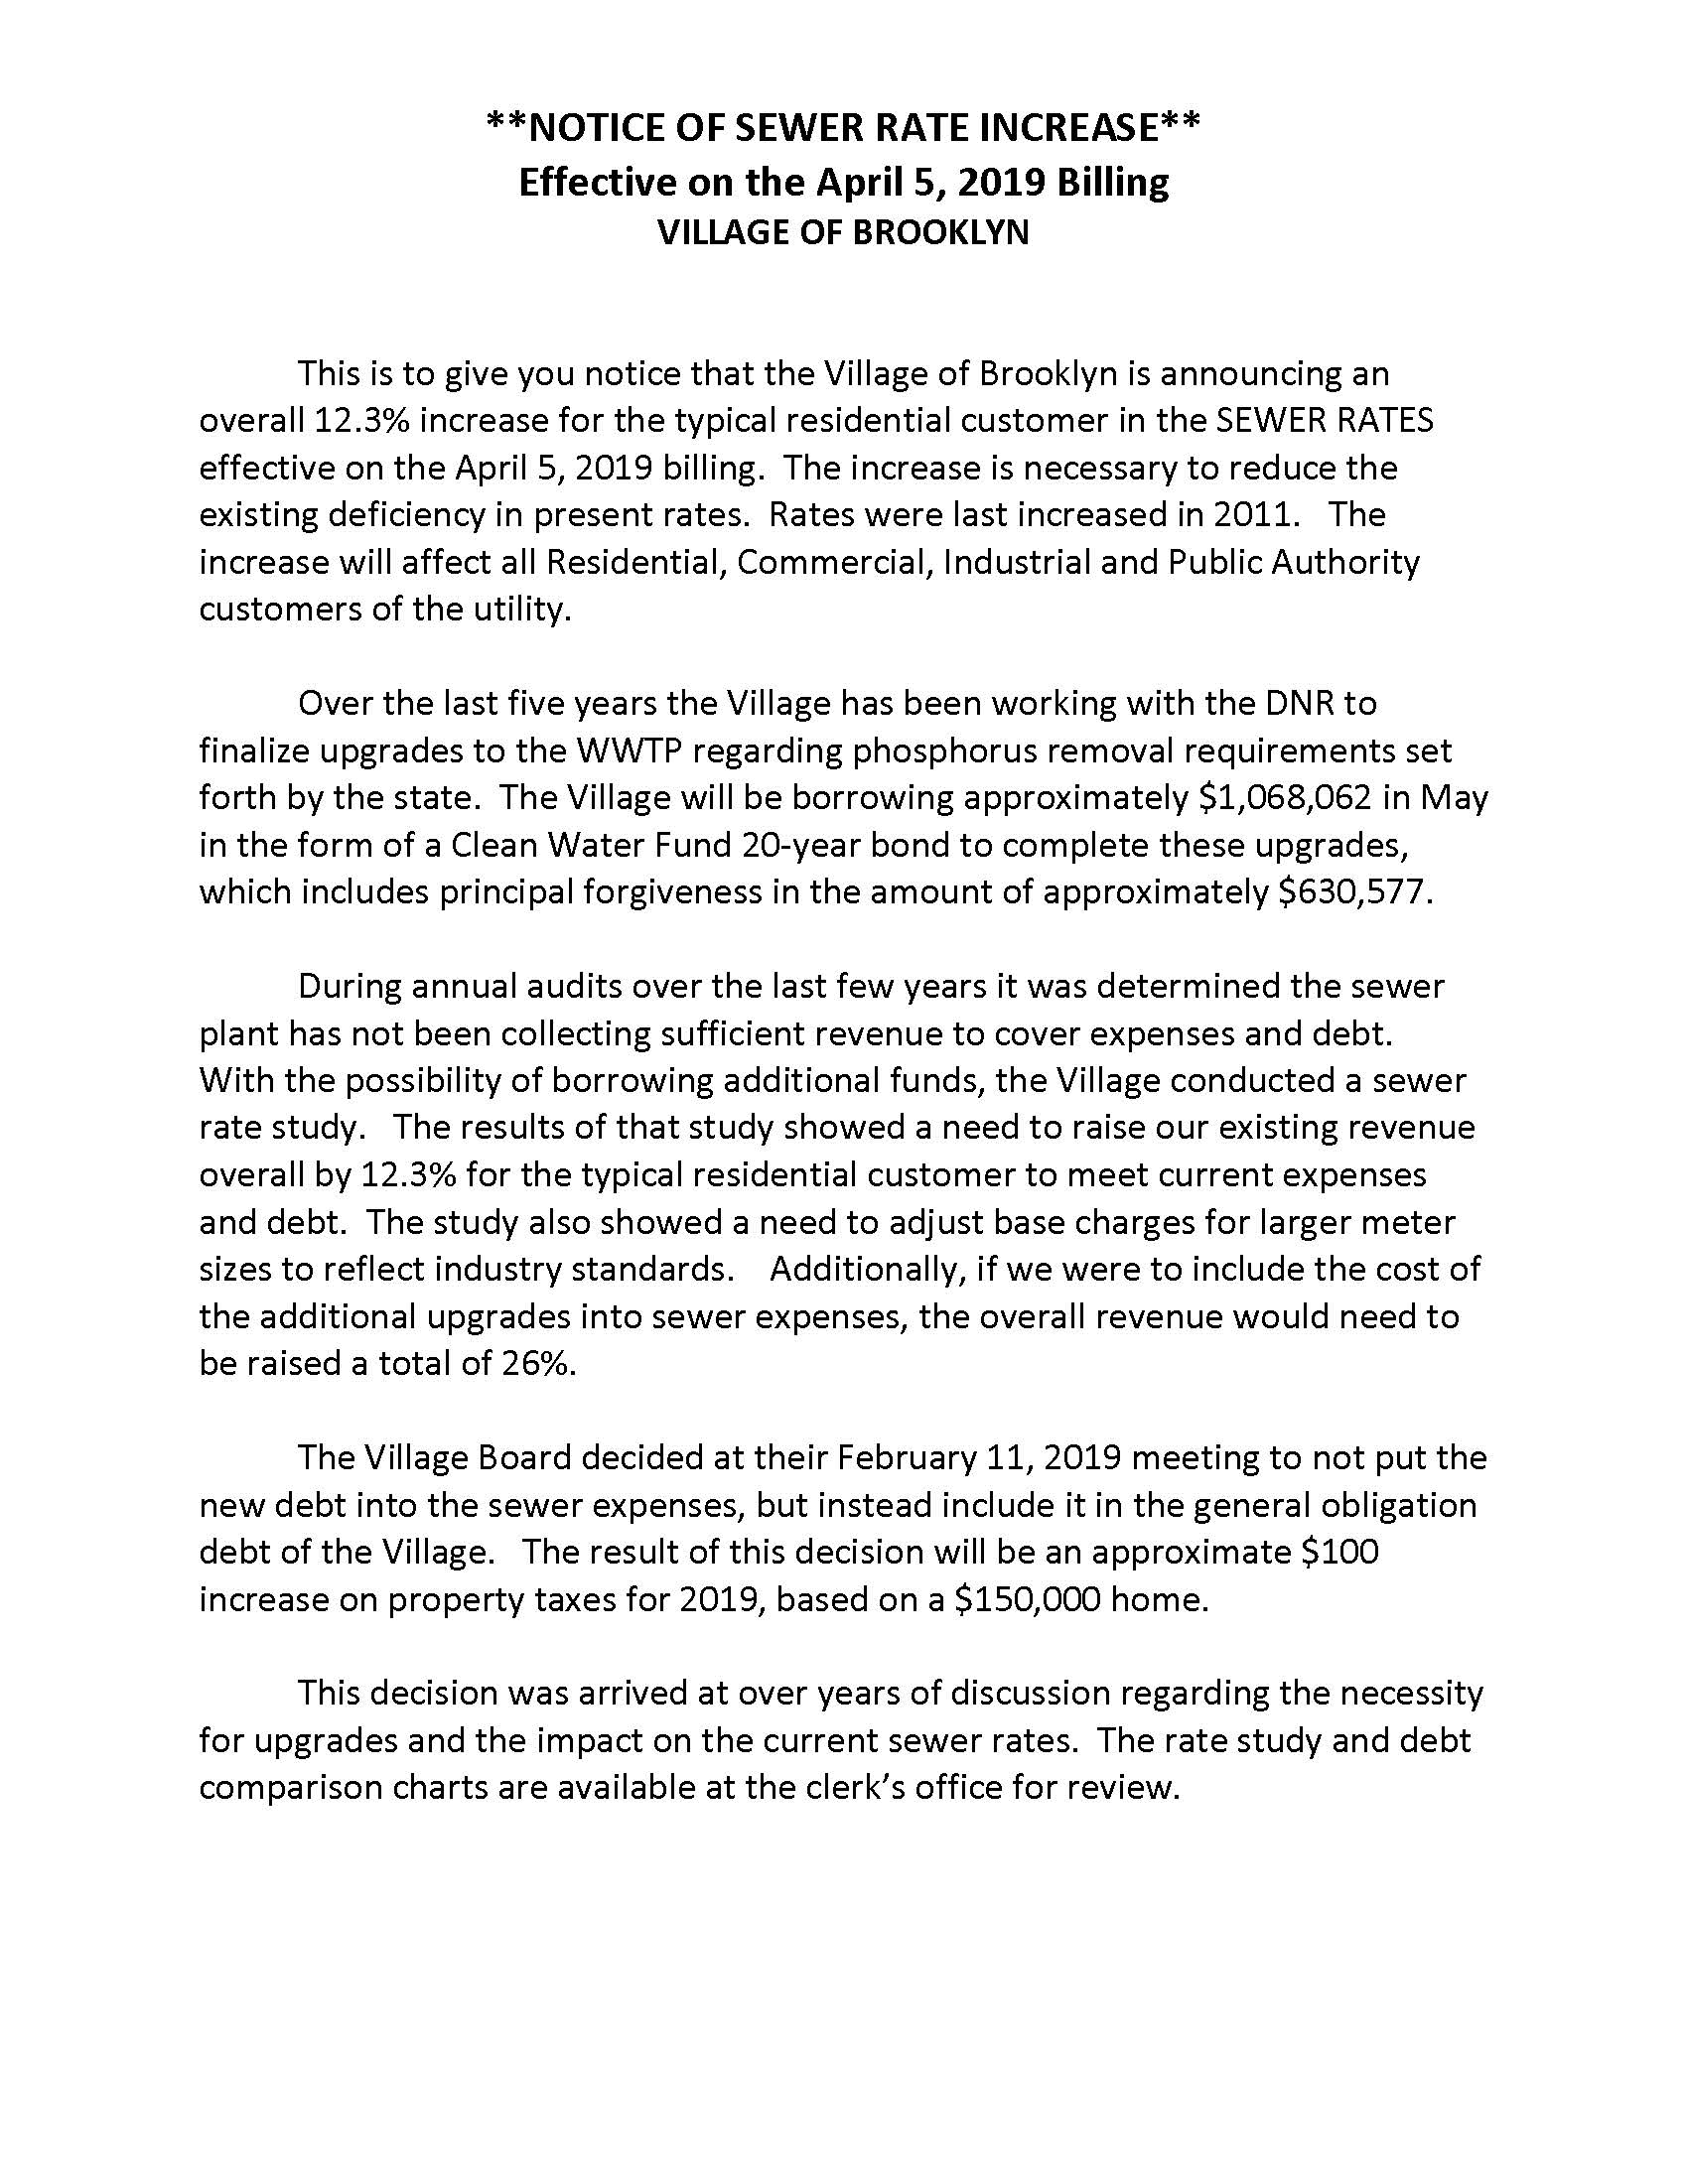 NOTICE OF SEWER RATE INCREASE_Page_1